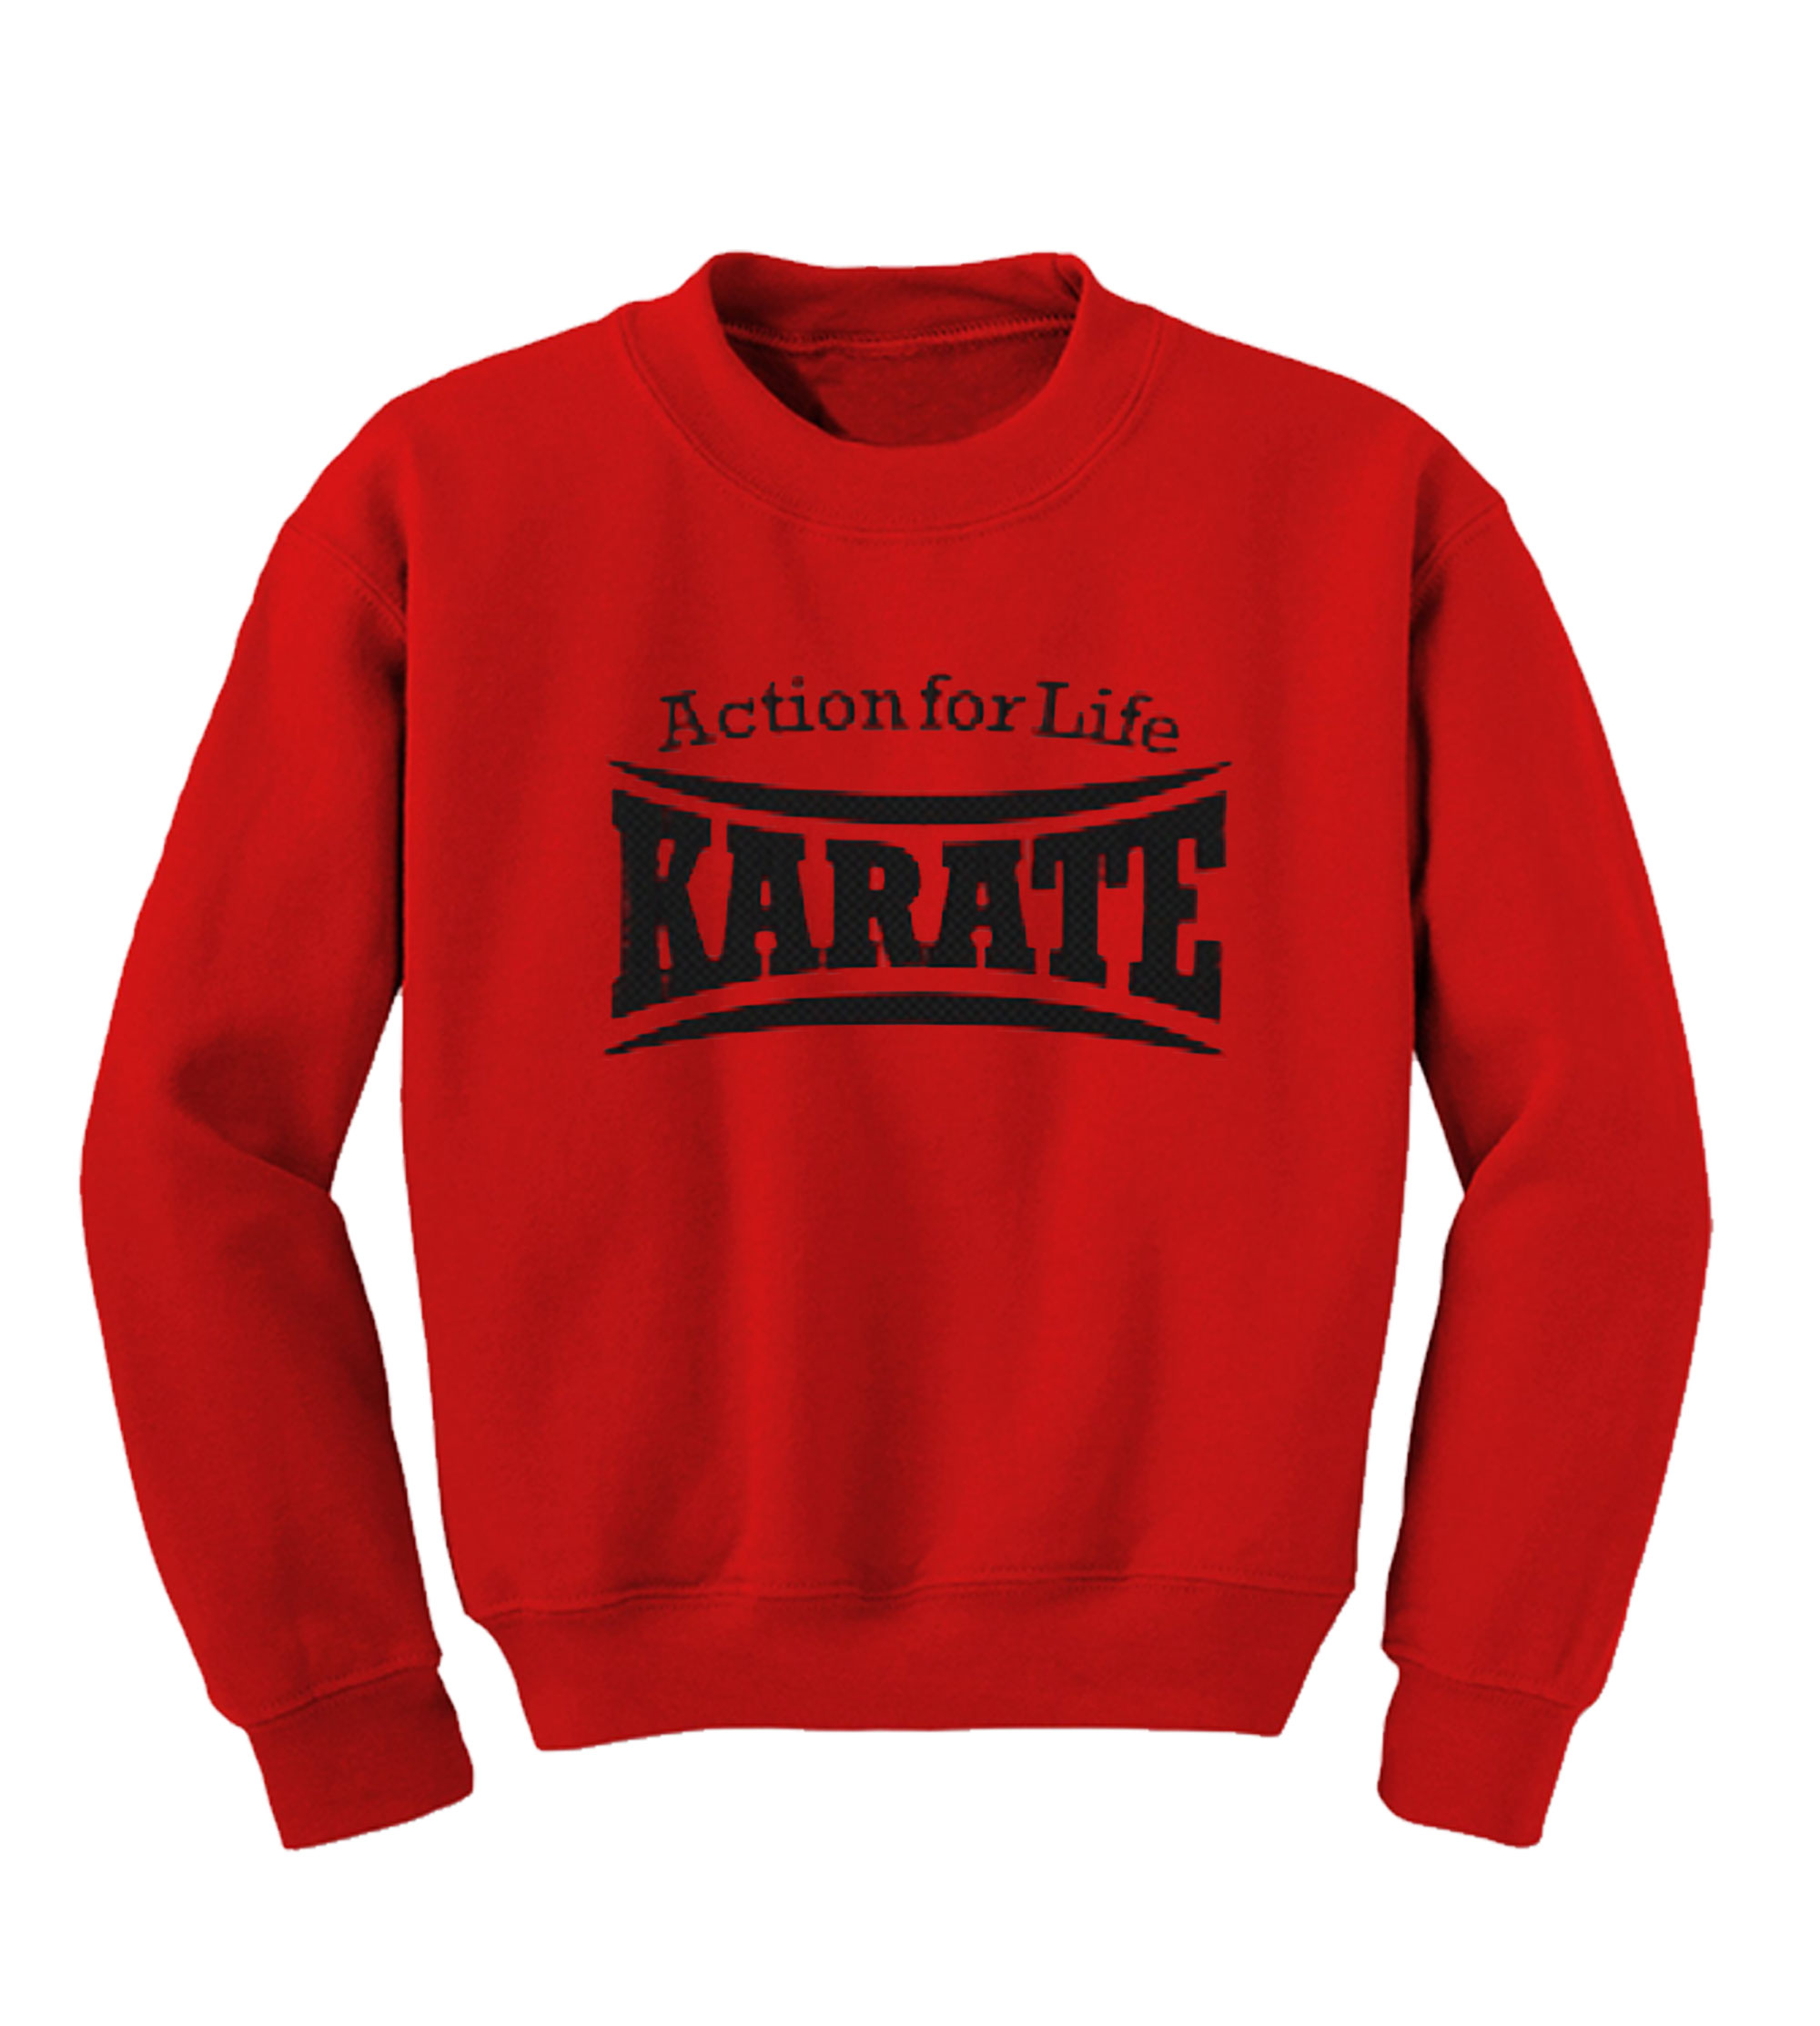 Action For Life Karate Sweatshirt